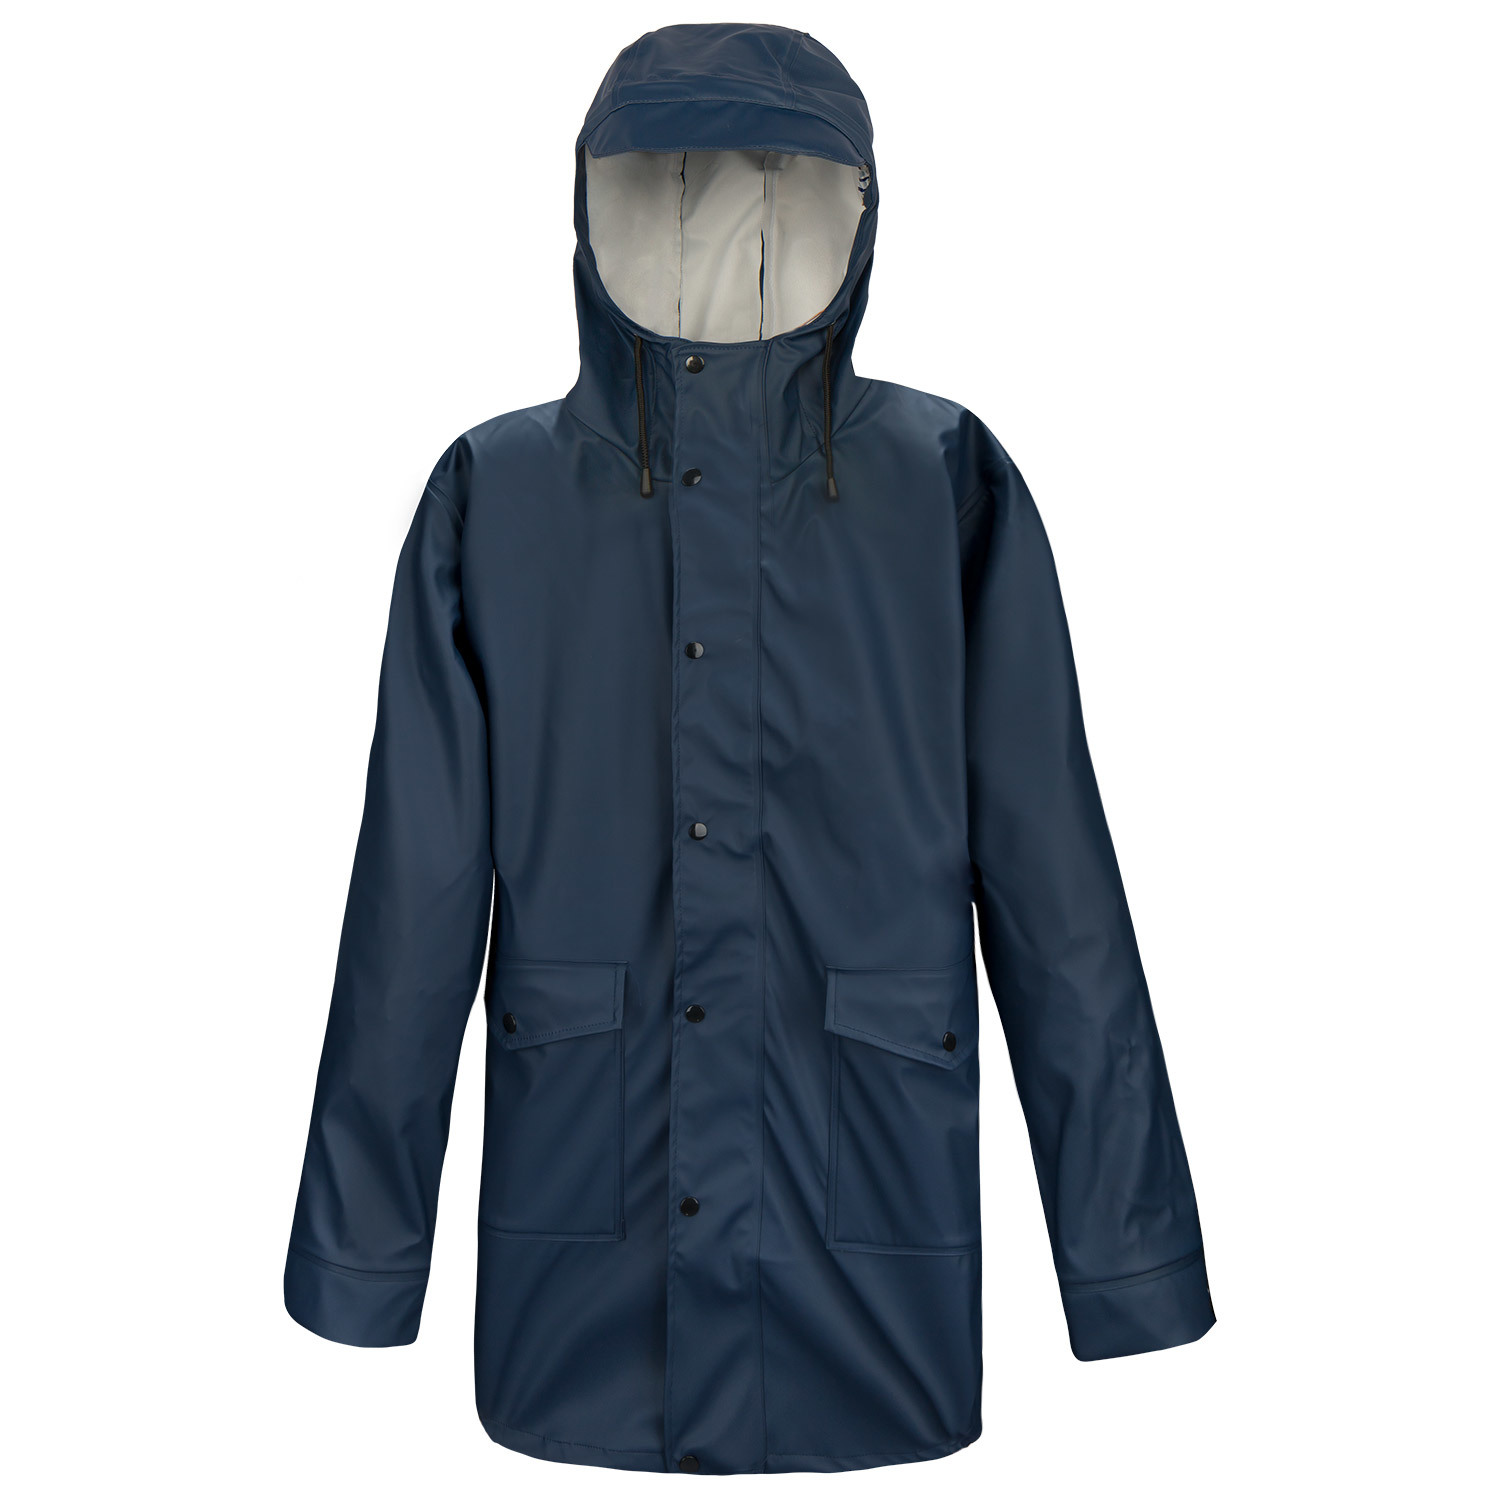 wetterjacke regenjacke herren marineblau gr 50 parka wasserdicht funktionsjacke ebay. Black Bedroom Furniture Sets. Home Design Ideas